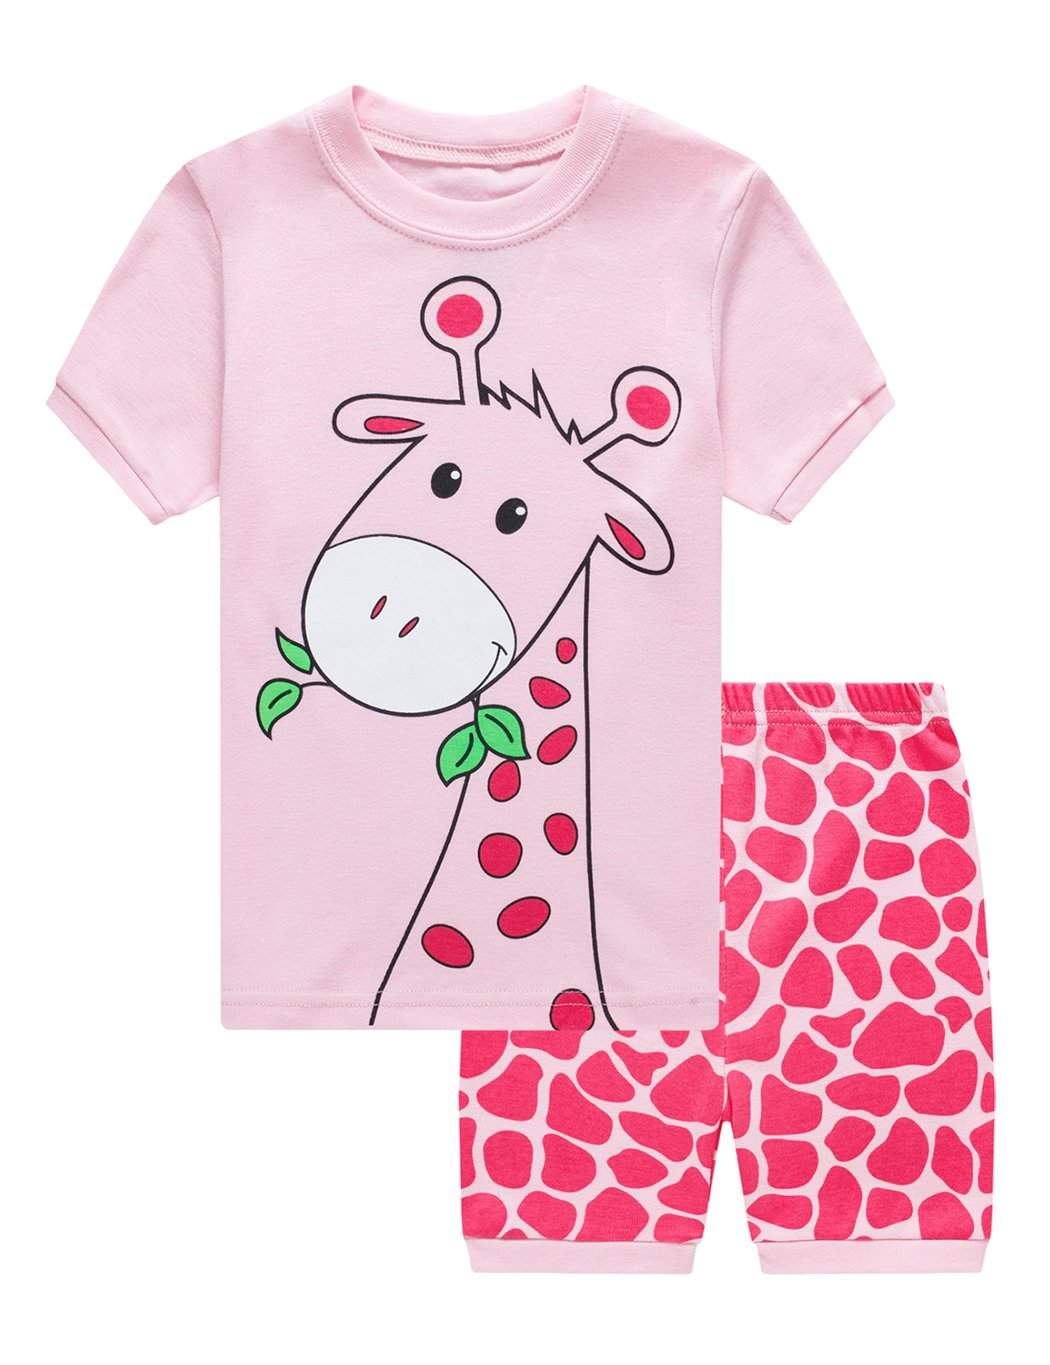 Little Girls Deer Pajamas Sets Toddler Short Sleeve Leggings Outfits 2 Piece for Kids 1 2 T